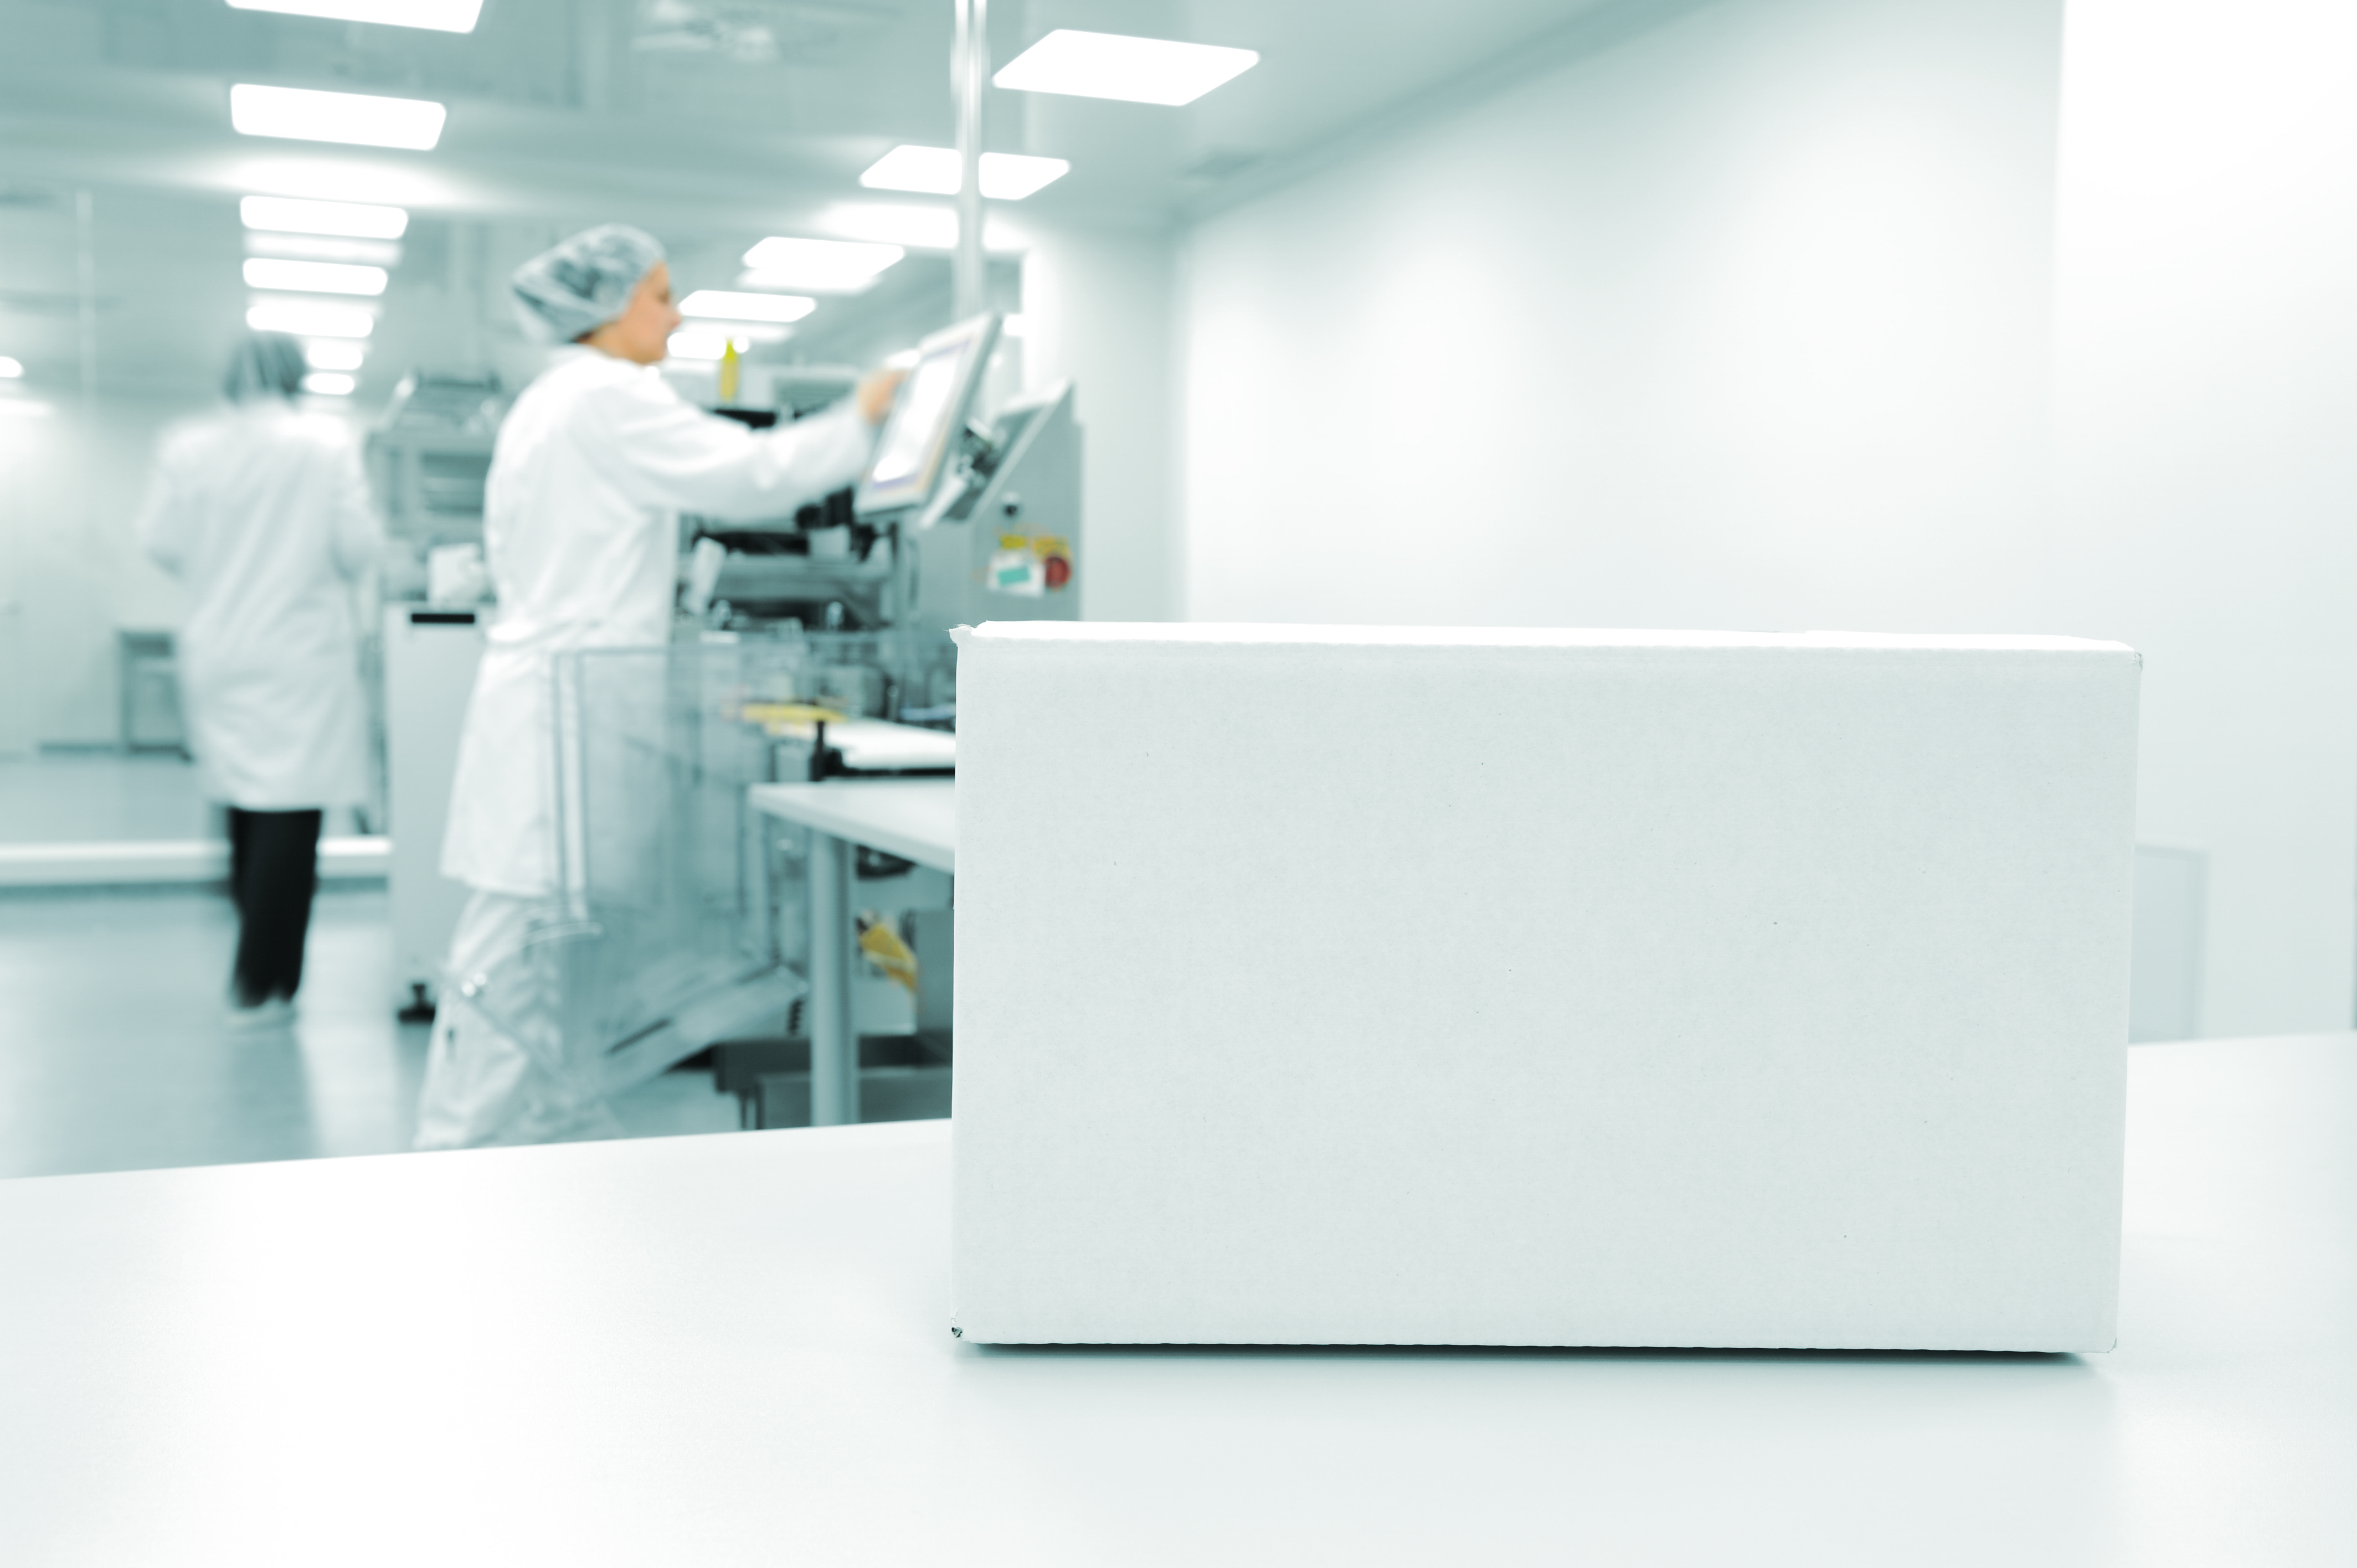 White box at automated production line at modern factory, people worki